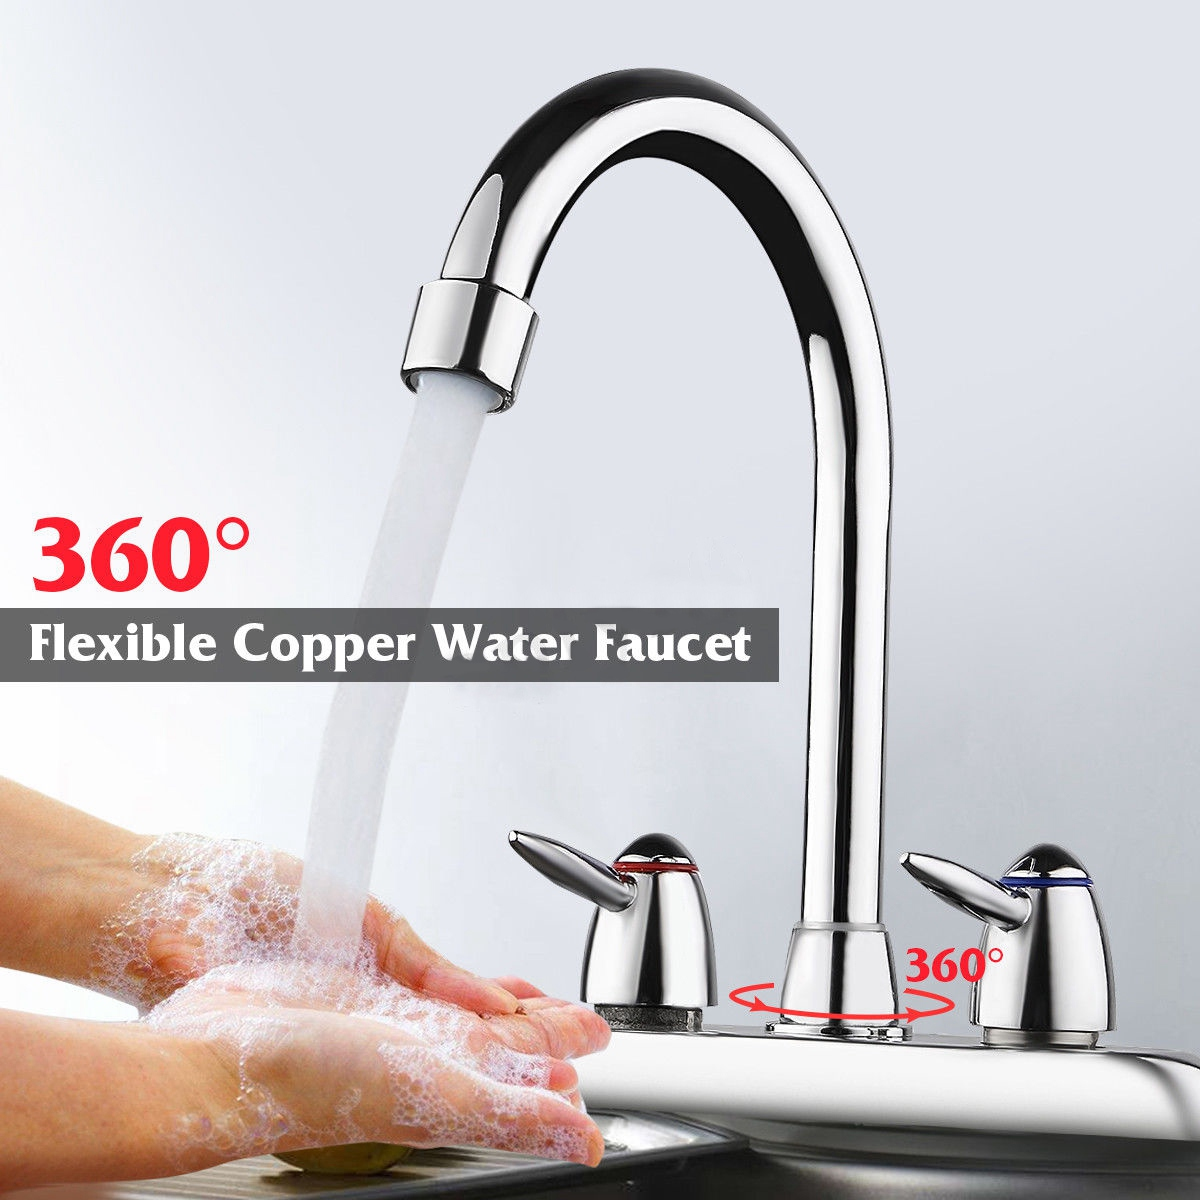 New Swivel Bathroom Kitchen Faucet Chrome Two Handle Hot Cold Sink Mixer Tap Sprayer